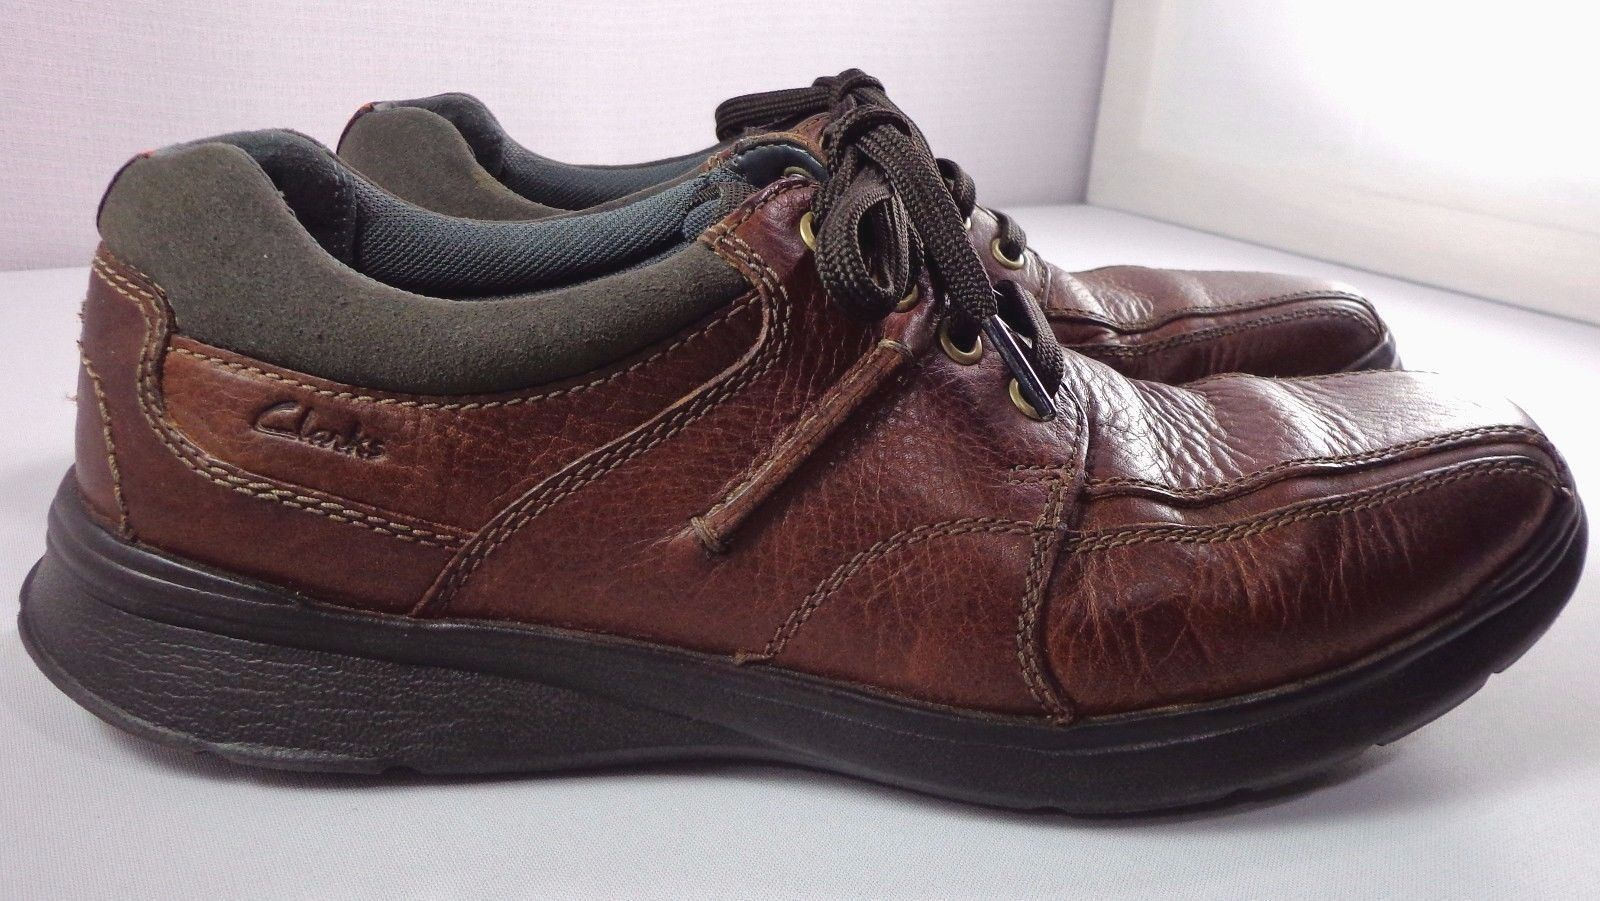 Mens Clarks Brown Leather Oxfords Size 10 M and 50 similar items e9a35f88c